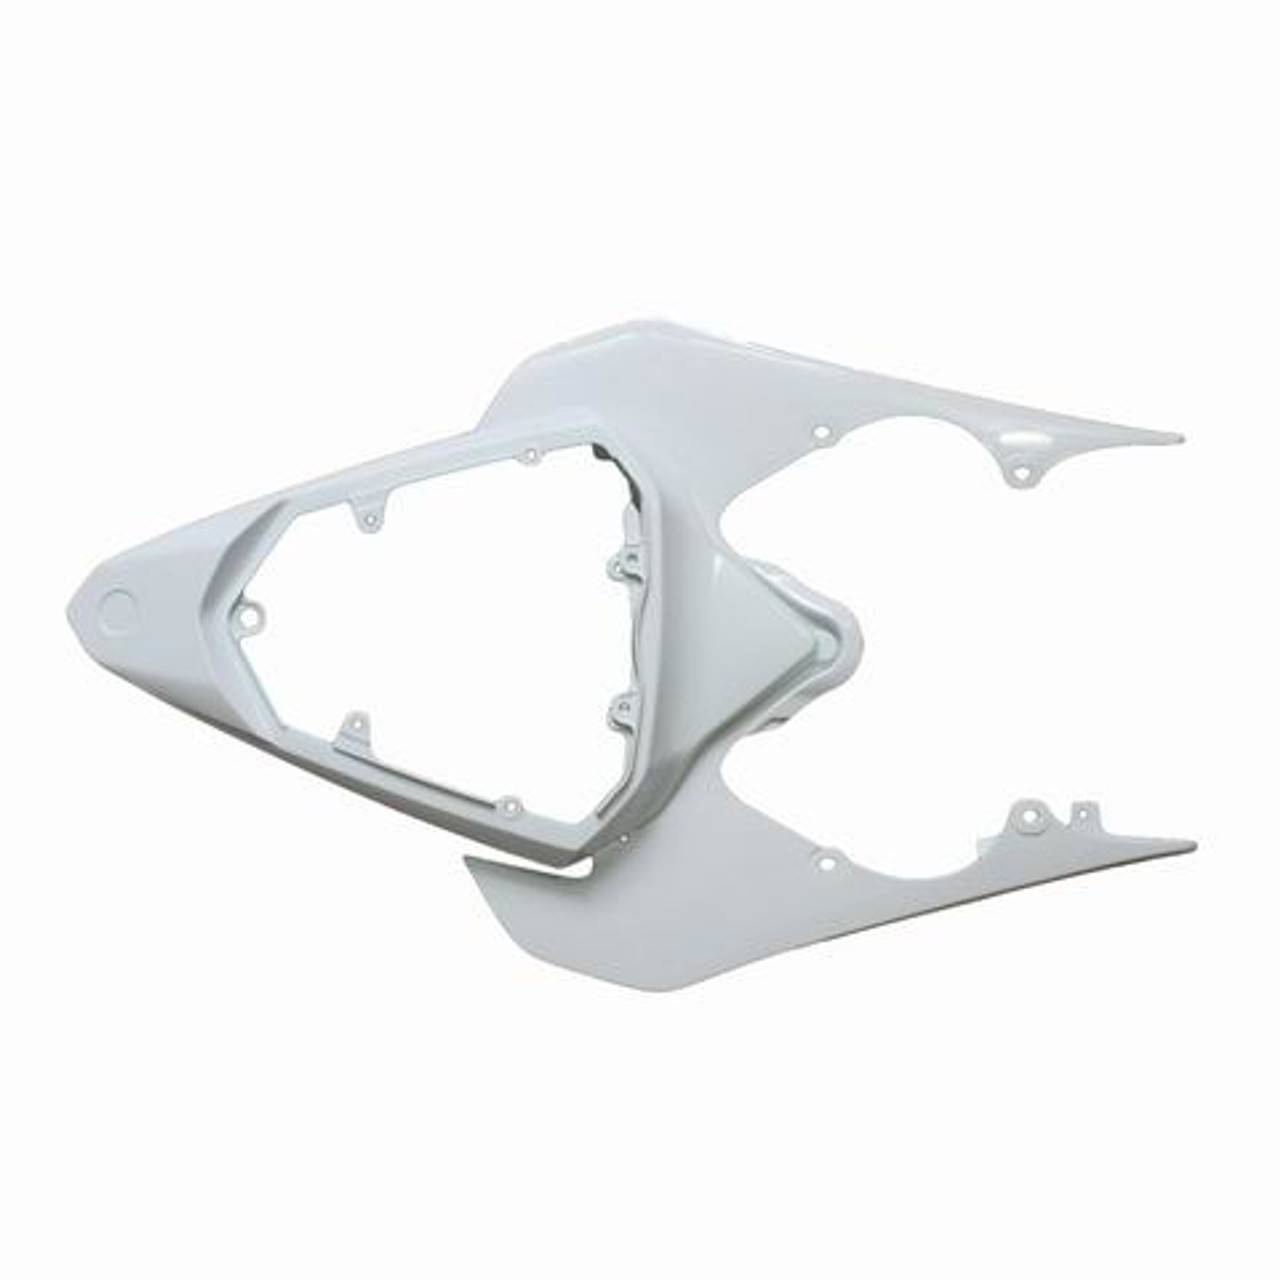 Fairings Yamaha YZF-R6 FIAT R6 Racing Primal only Unpainted (2008-2016) (Fairing-R6-0809-999)